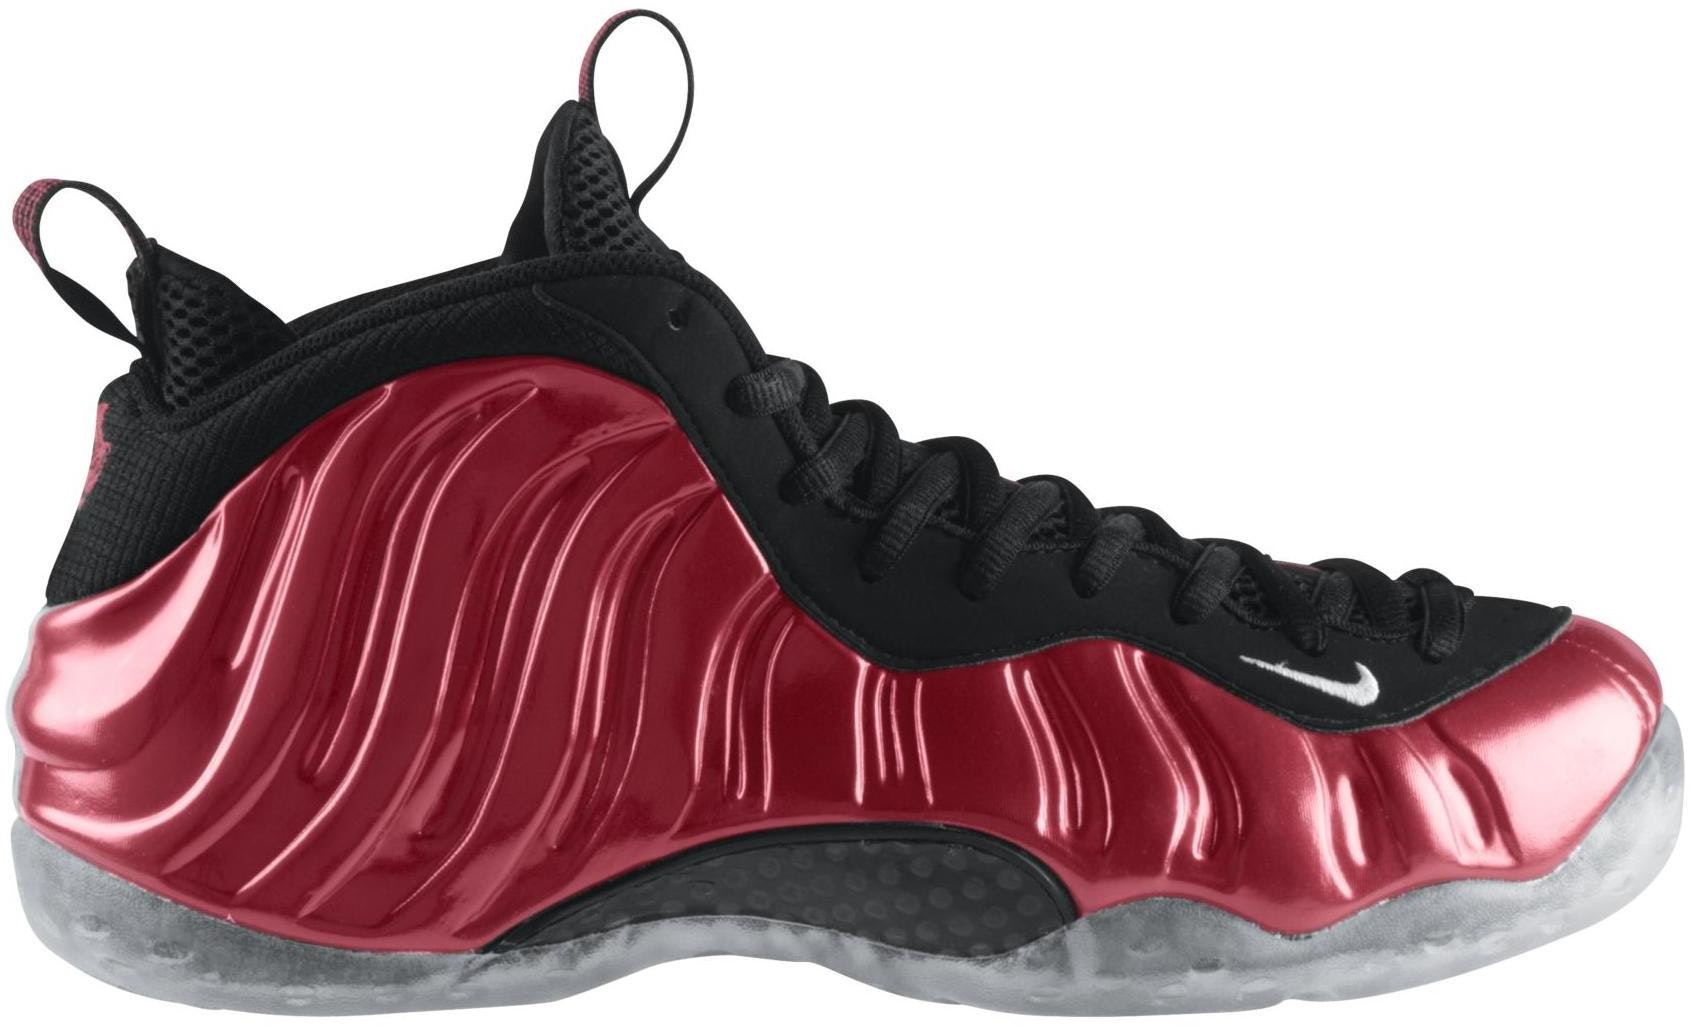 Air Foamposite One Metallic Red (2012)